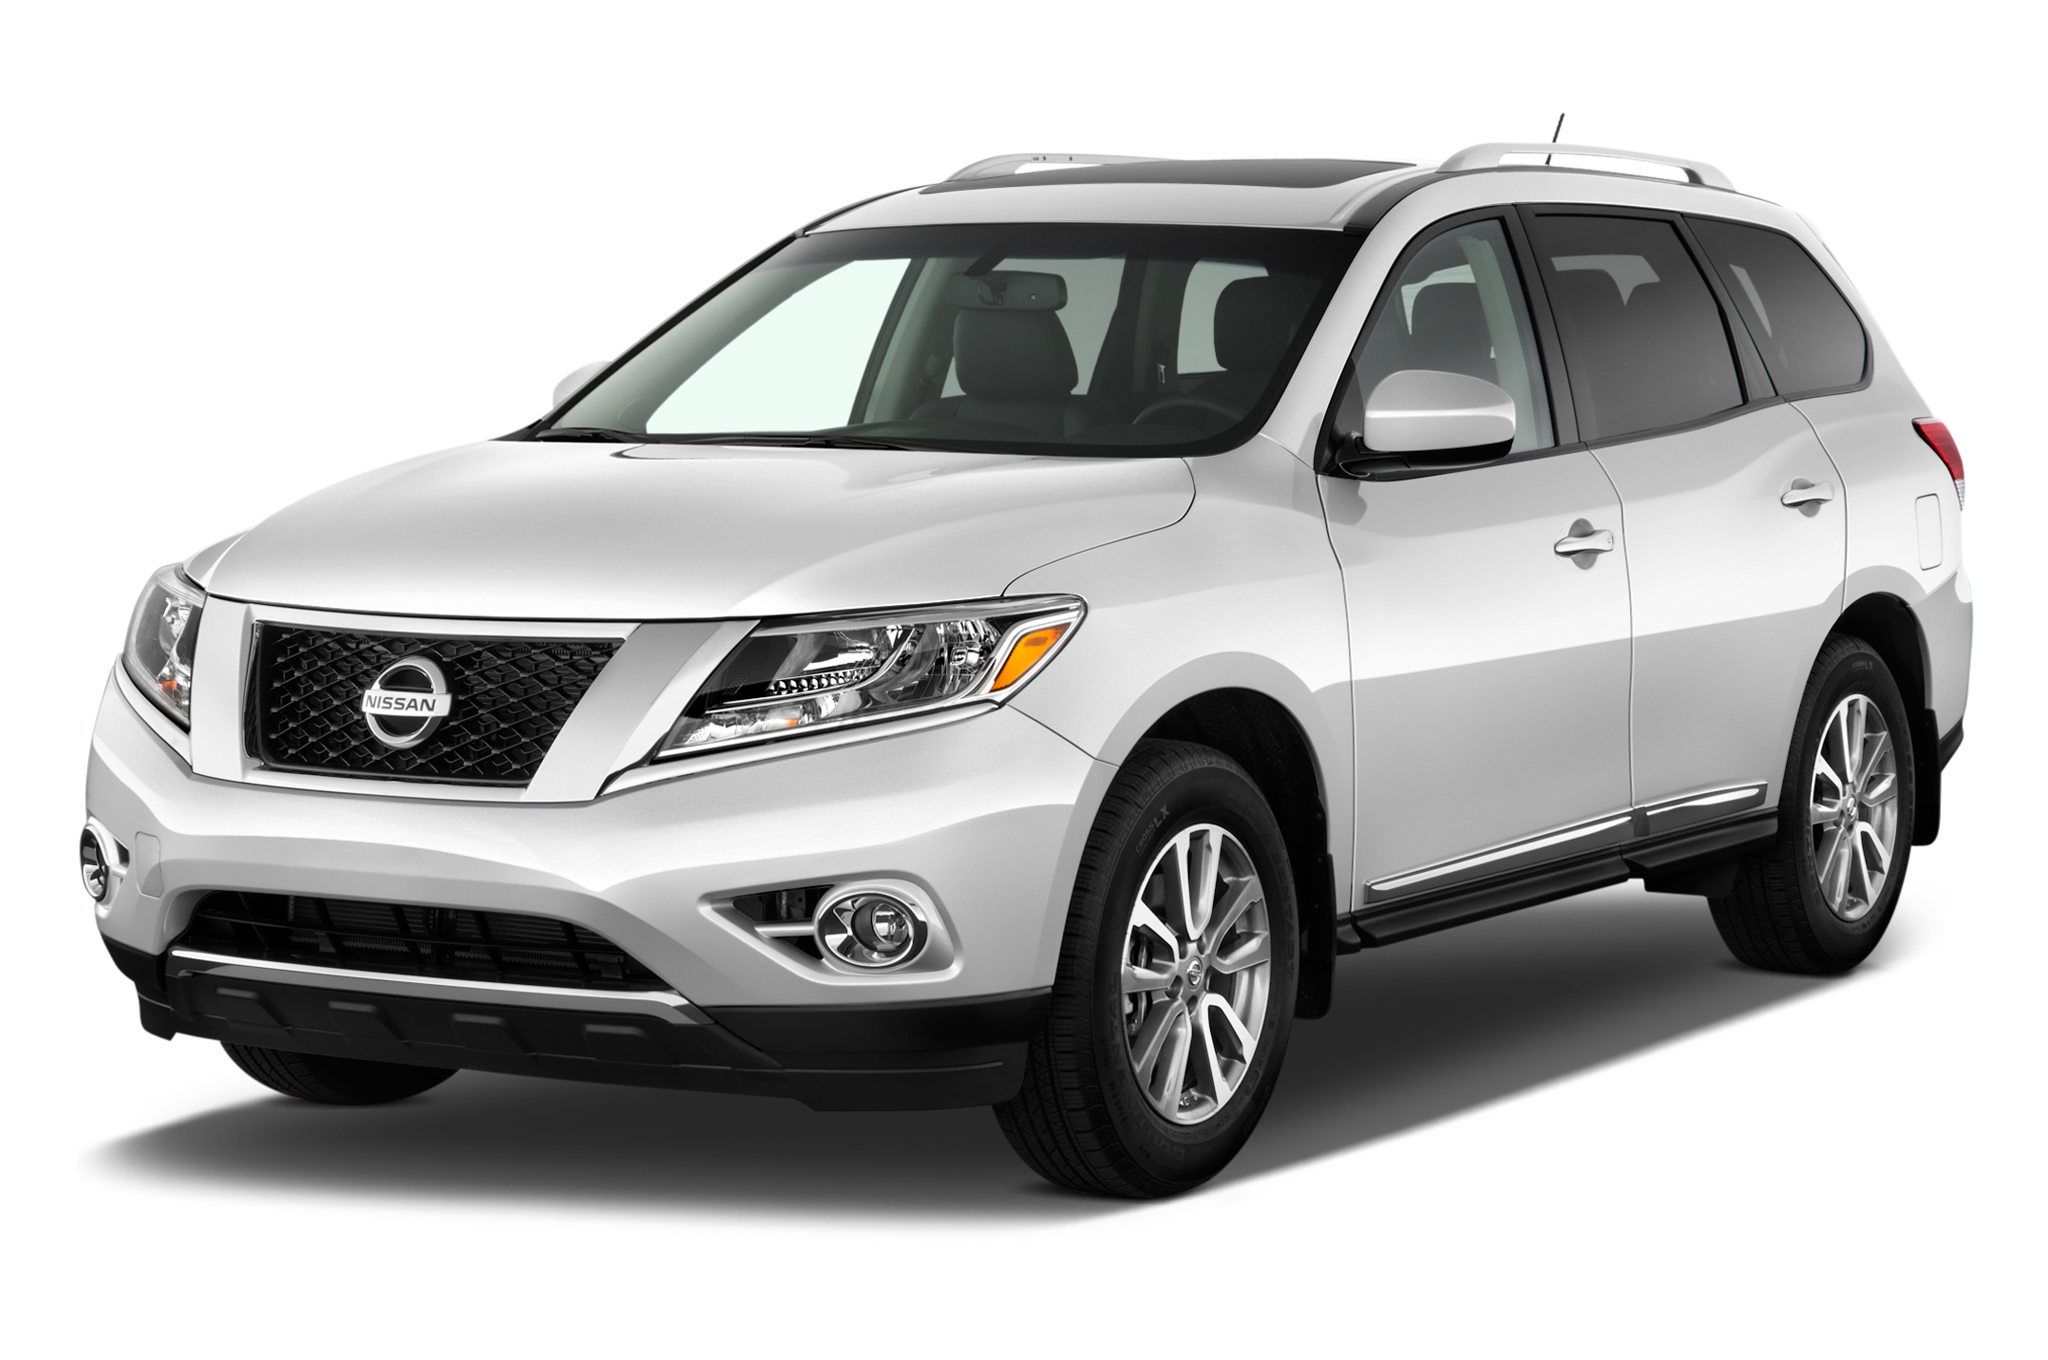 2015 Nissan Pathfinder Reviews and Rating